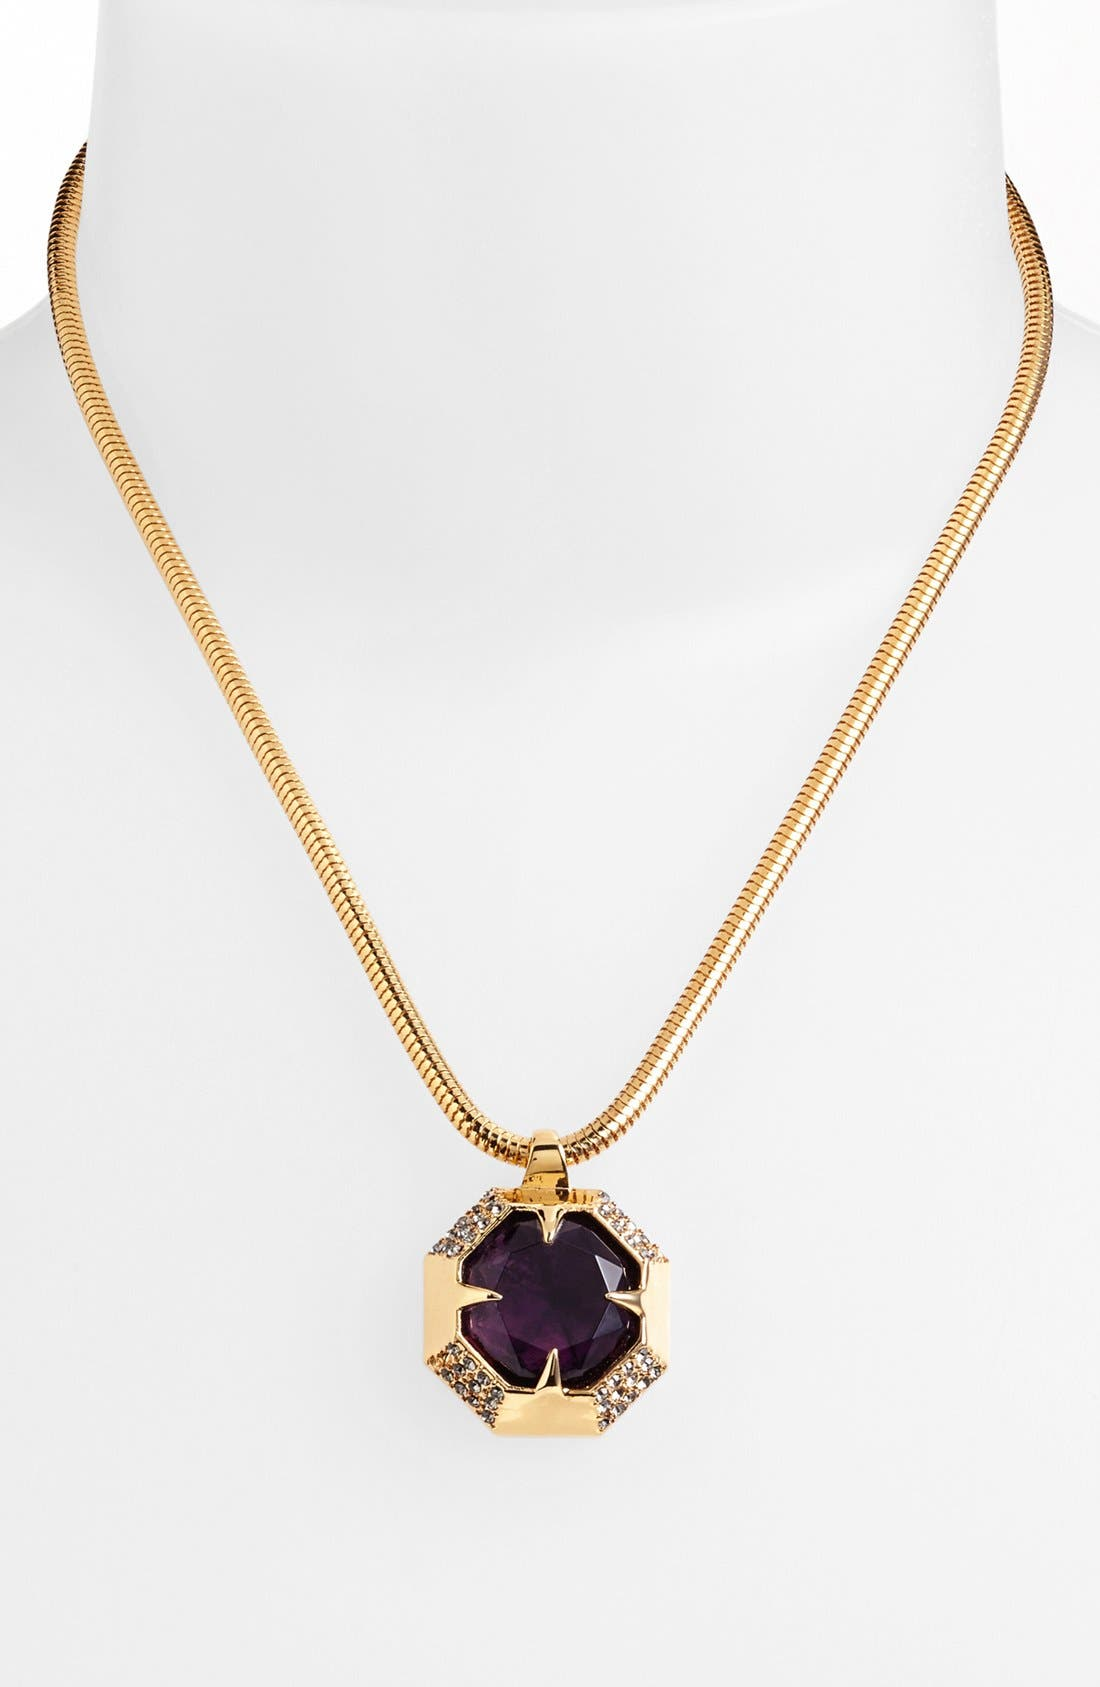 Alternate Image 1 Selected - Vince Camuto 'Jewel Purpose' Stone Pendant Necklace